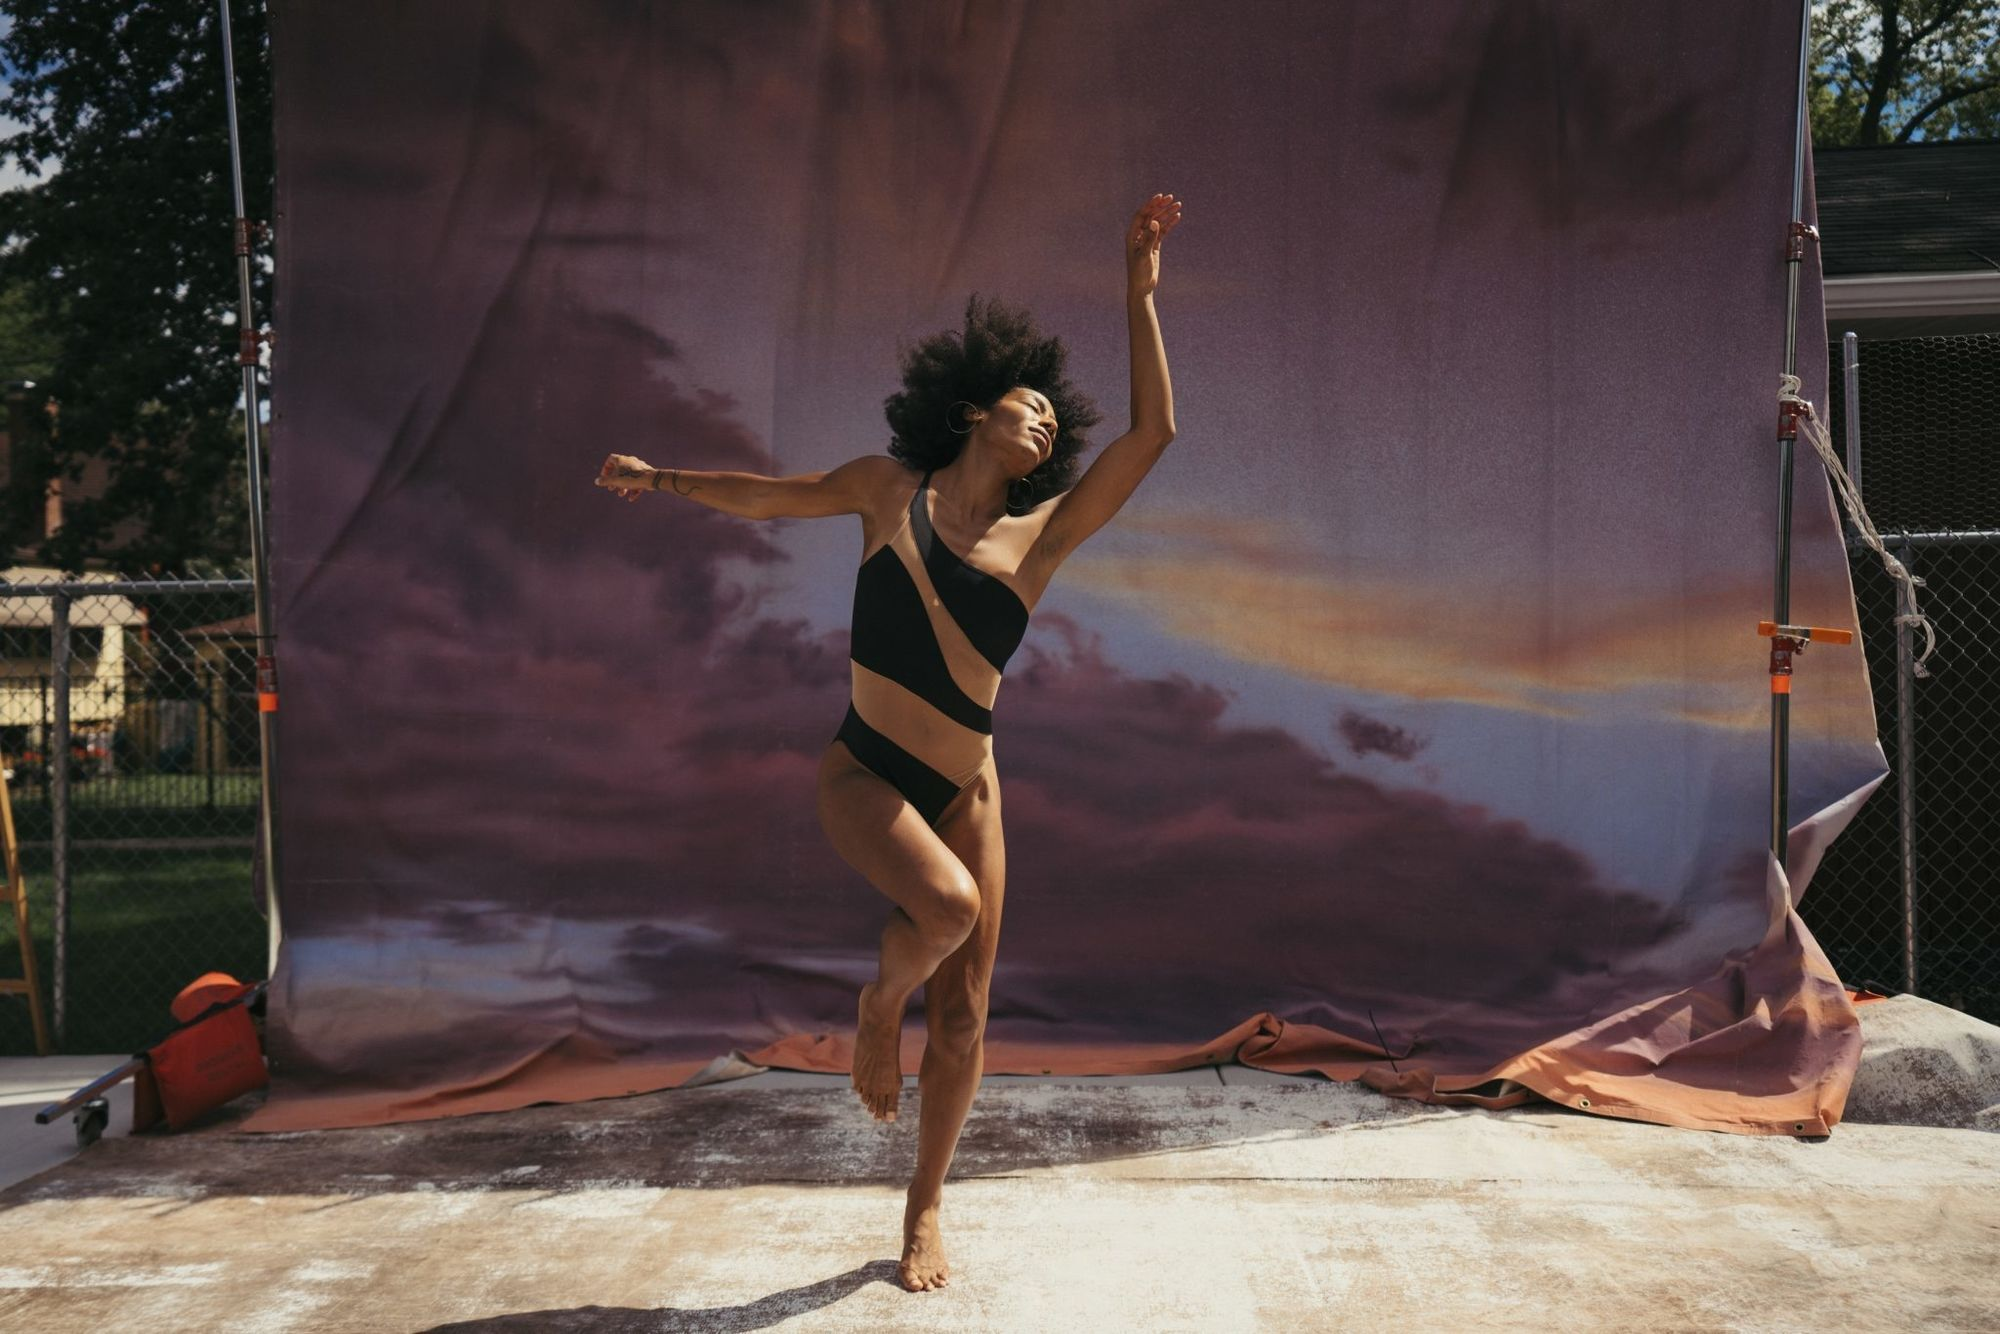 Marcus Smith c/o MAKING PICTURES collaborated with, choreographer and dancer, Rena Butler, for this personal series